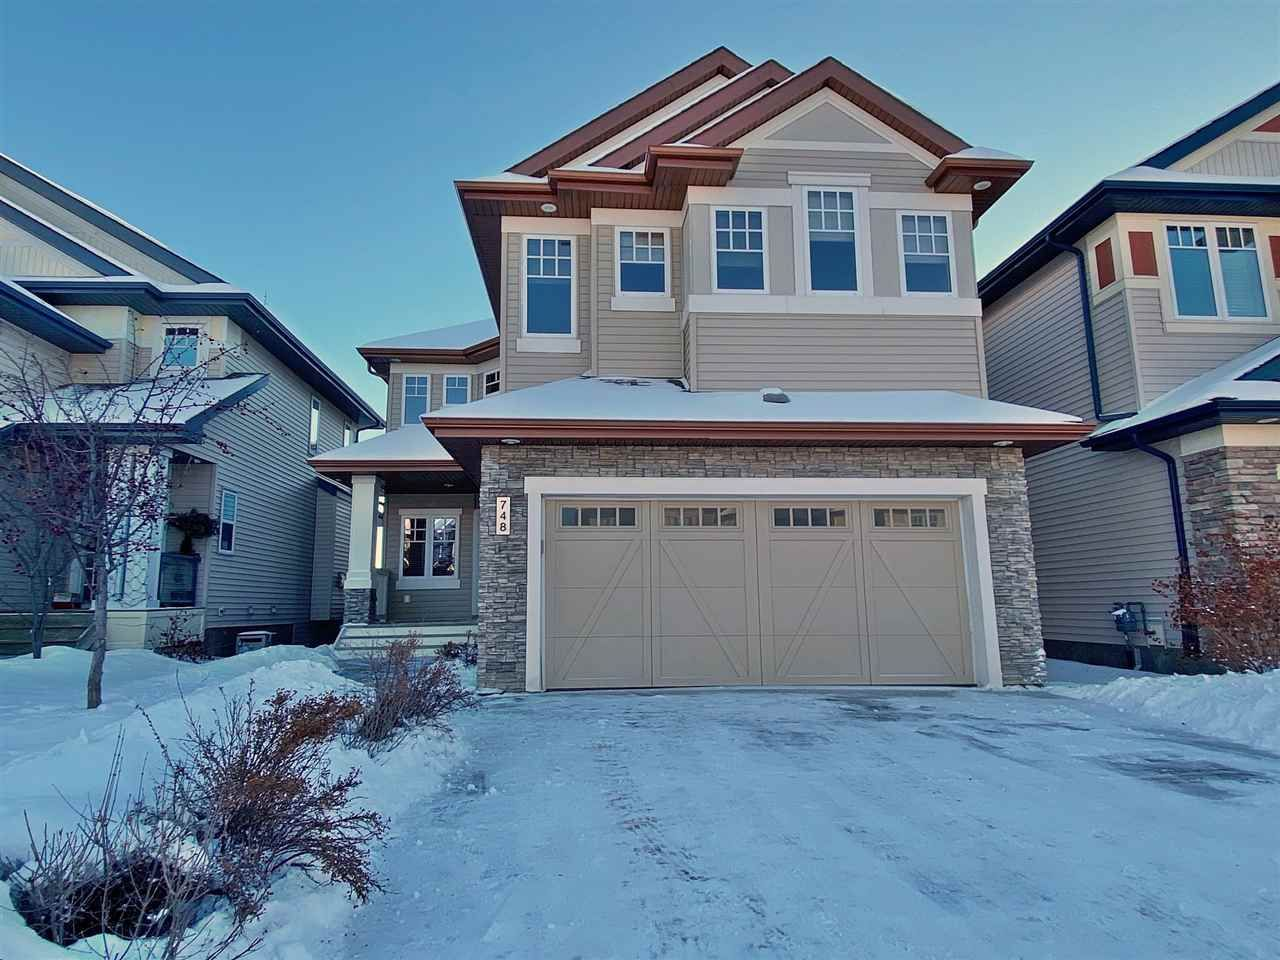 Main Photo: 748 ADAMS Way in Edmonton: Zone 56 House for sale : MLS®# E4228821